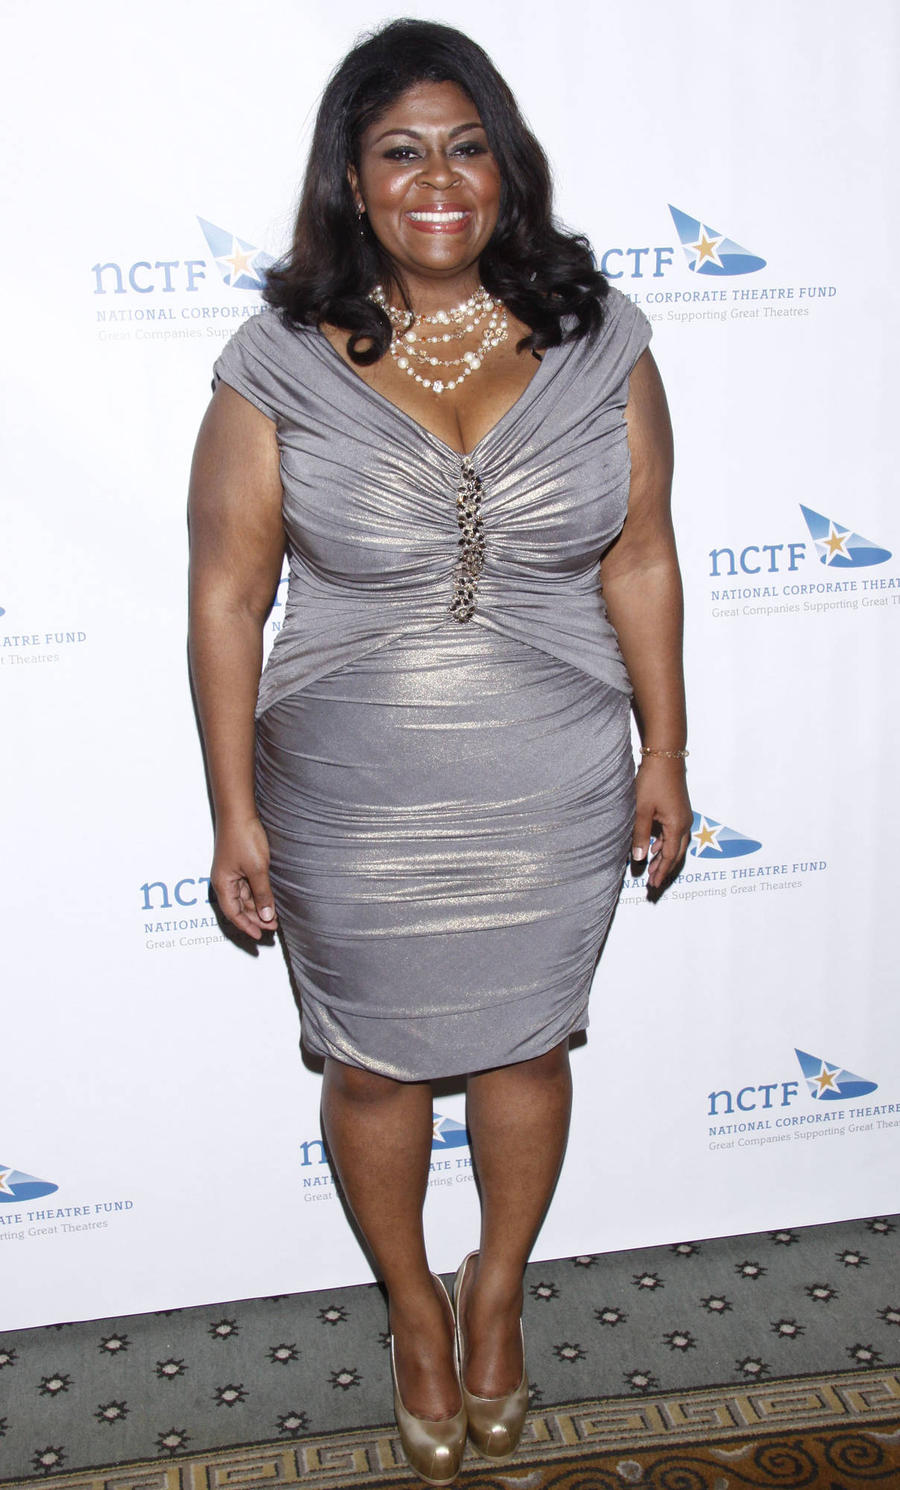 Kim Burrell Dropped As Bmi Honouree After Homosexuality Remarks